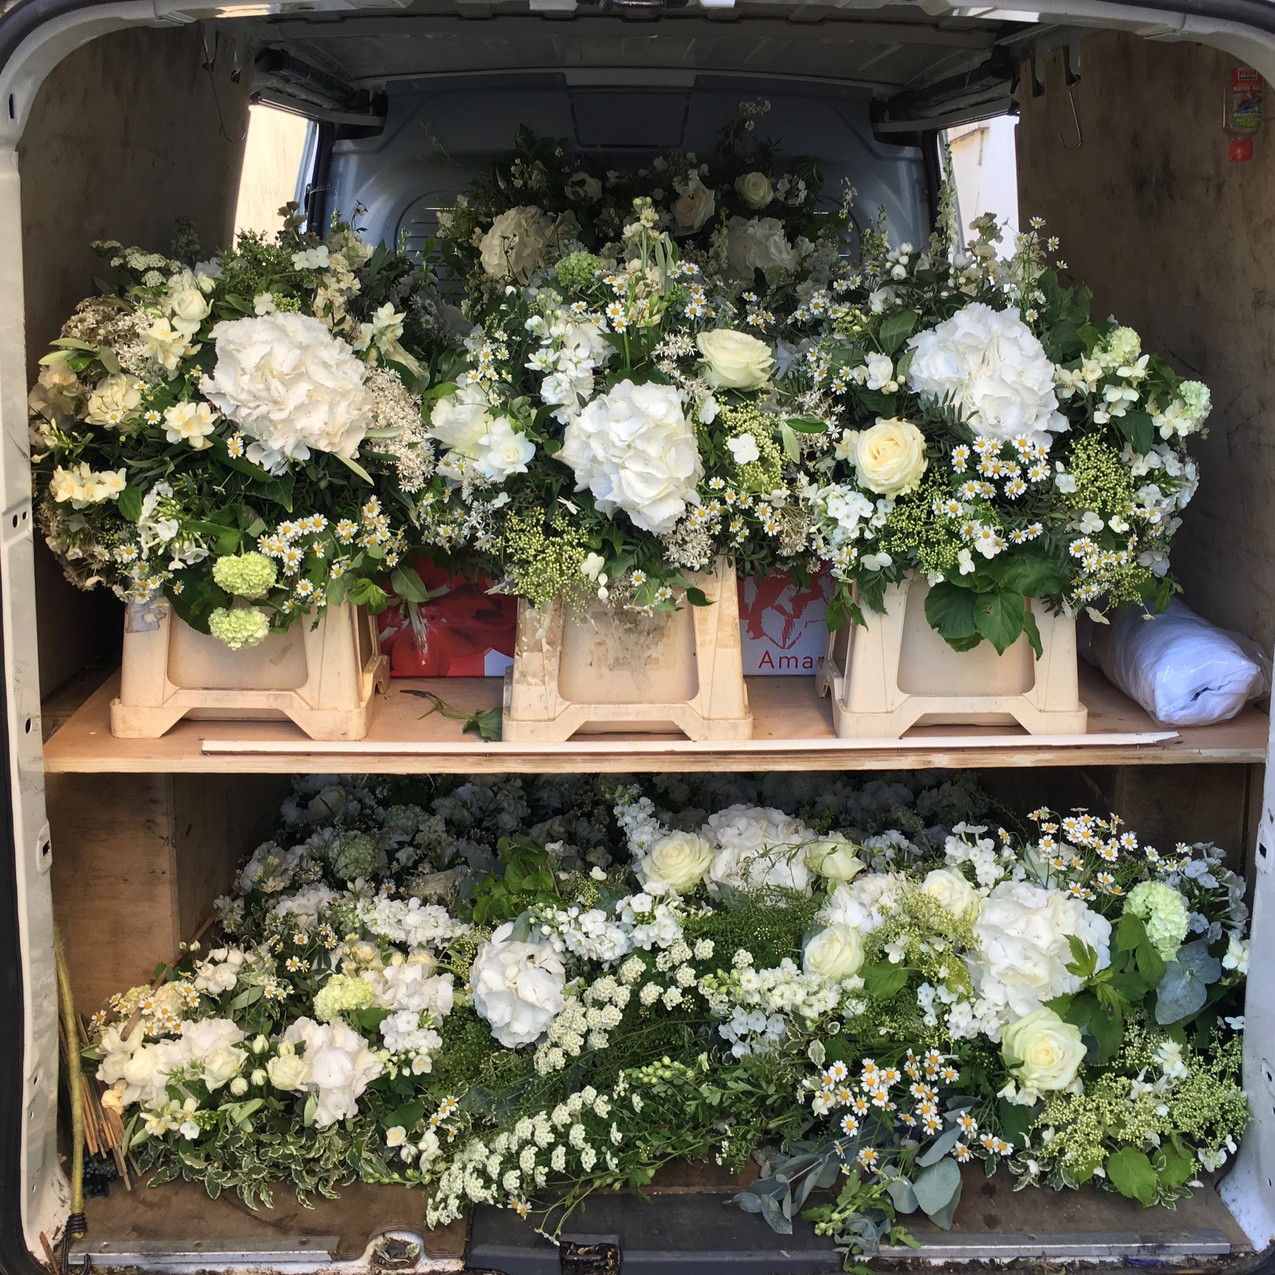 Two levels of flowers in the back of the Blue Geranium van